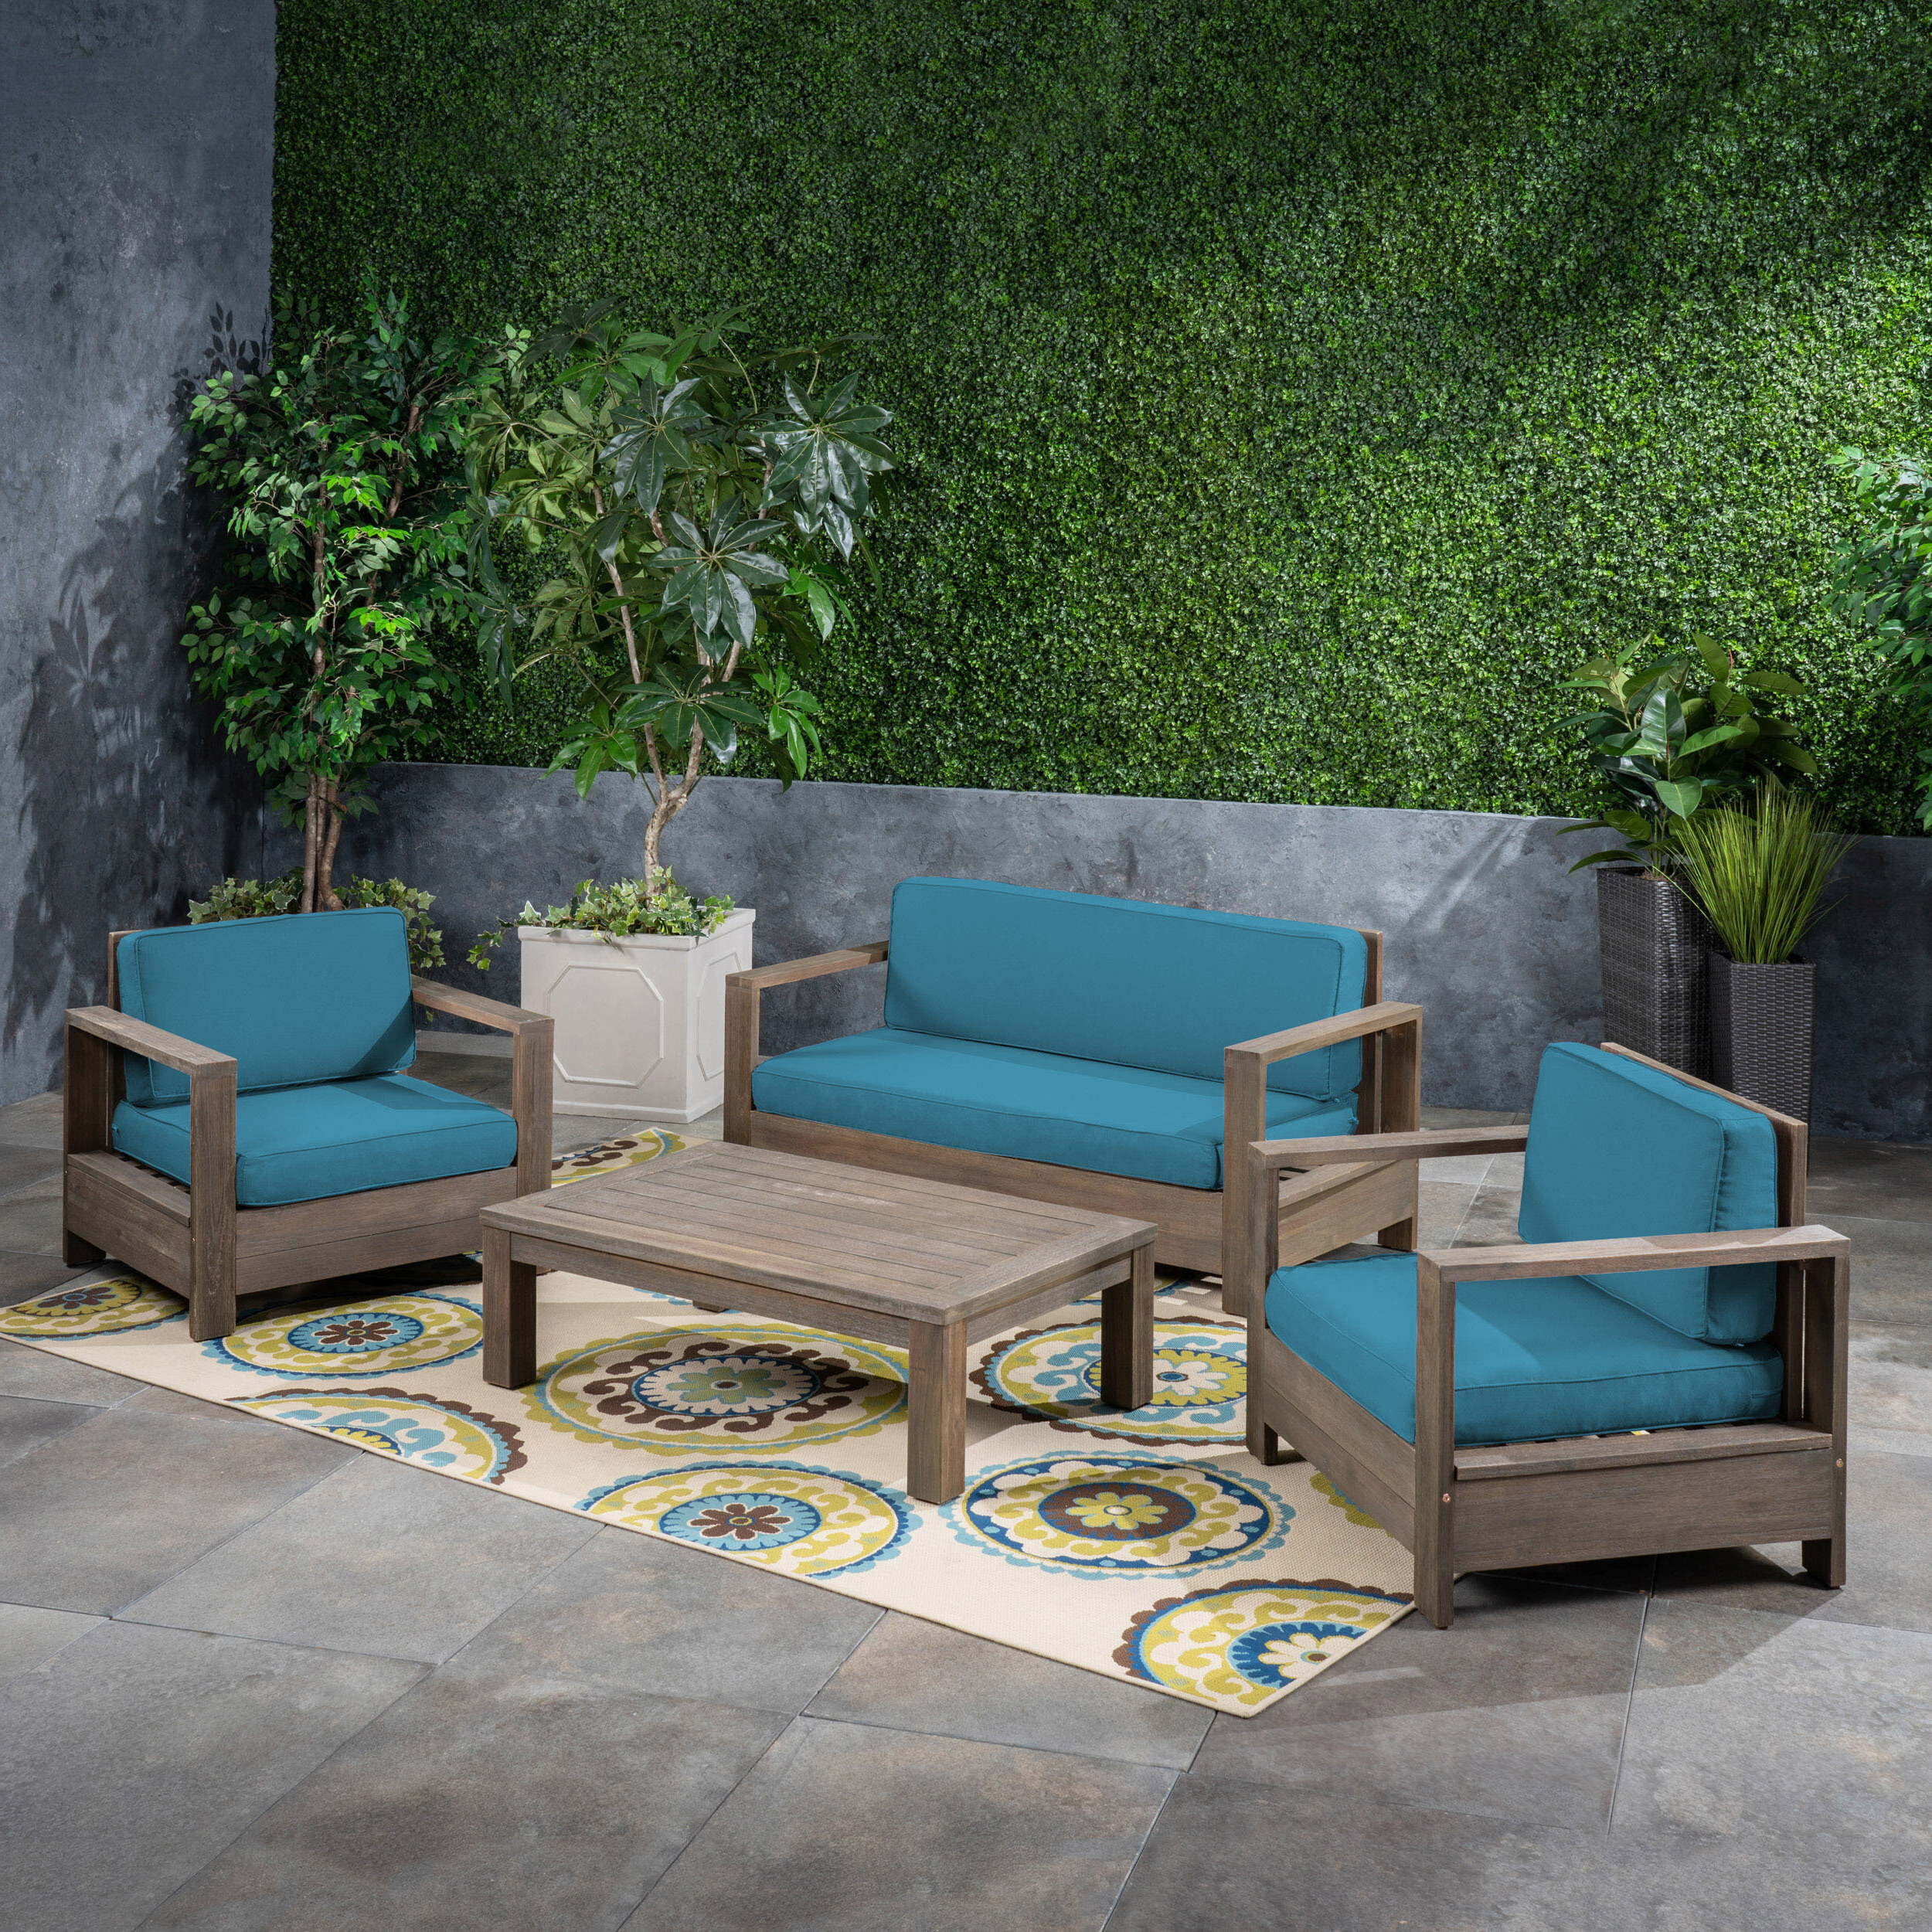 Landis Loveseats With Cushions Regarding Best And Newest Landis 4 Piece Sofa Seating Group With Cushions (View 6 of 25)